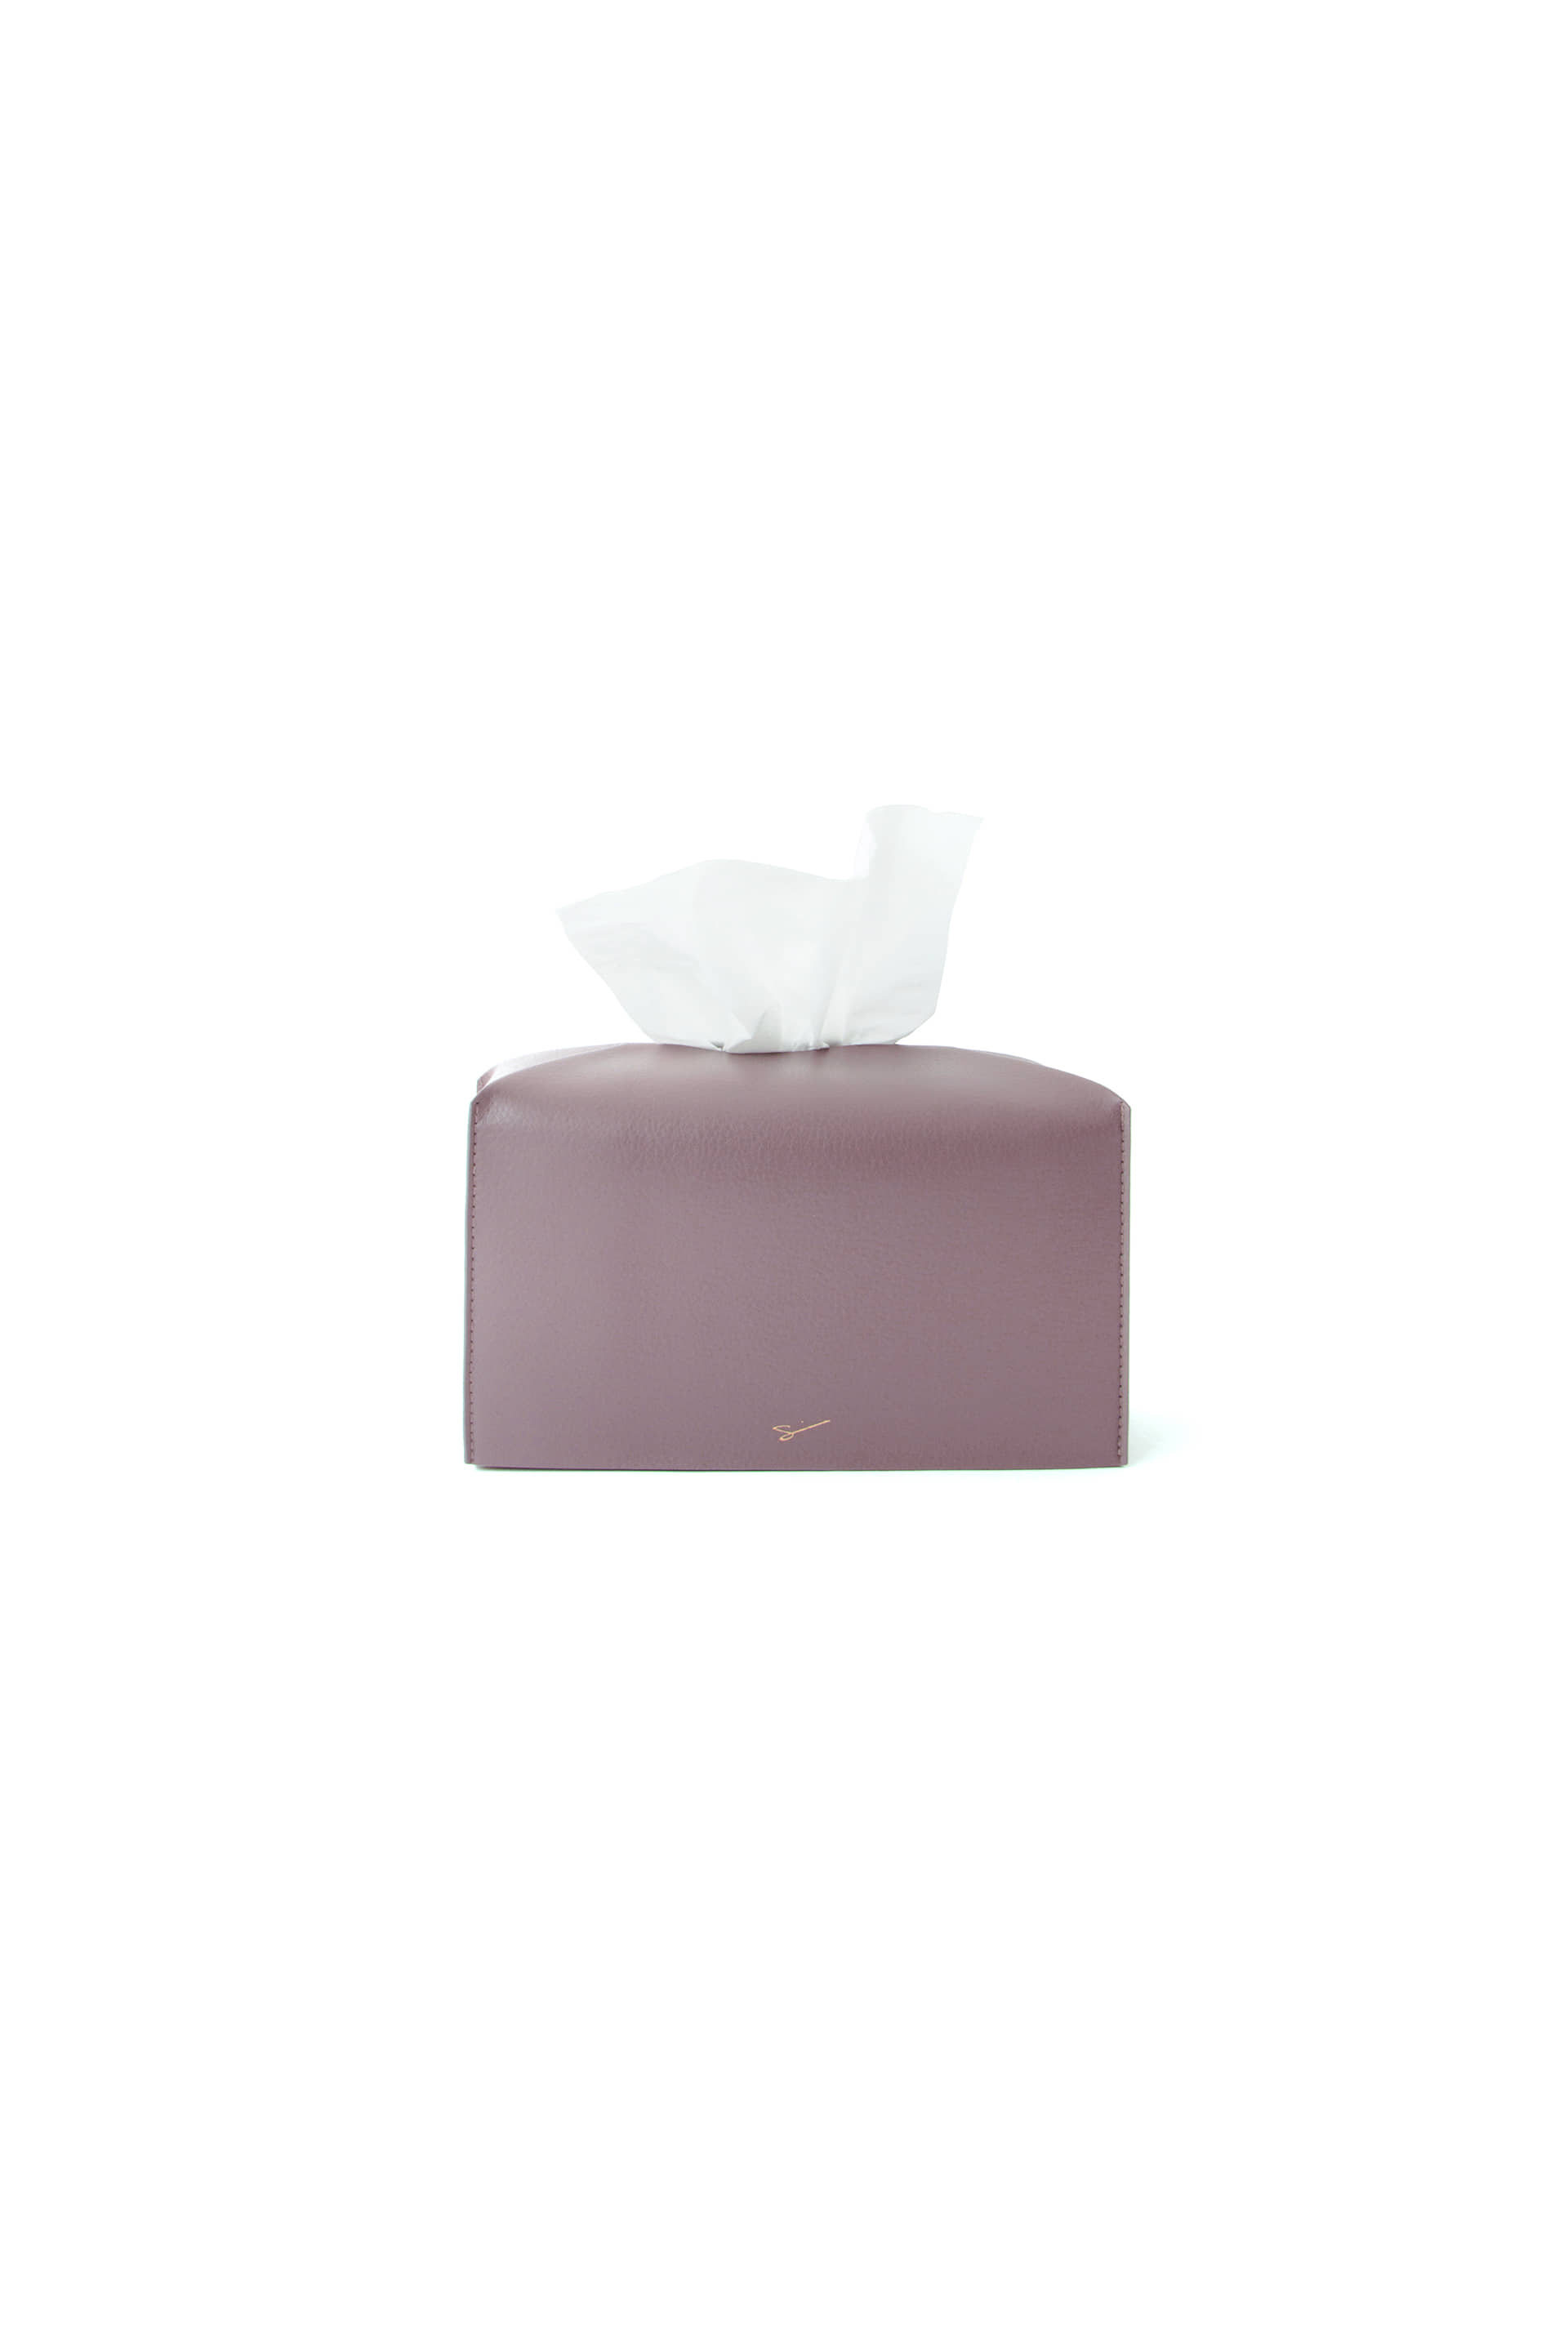 TISSUE CASE L 19 Mulberry Purple